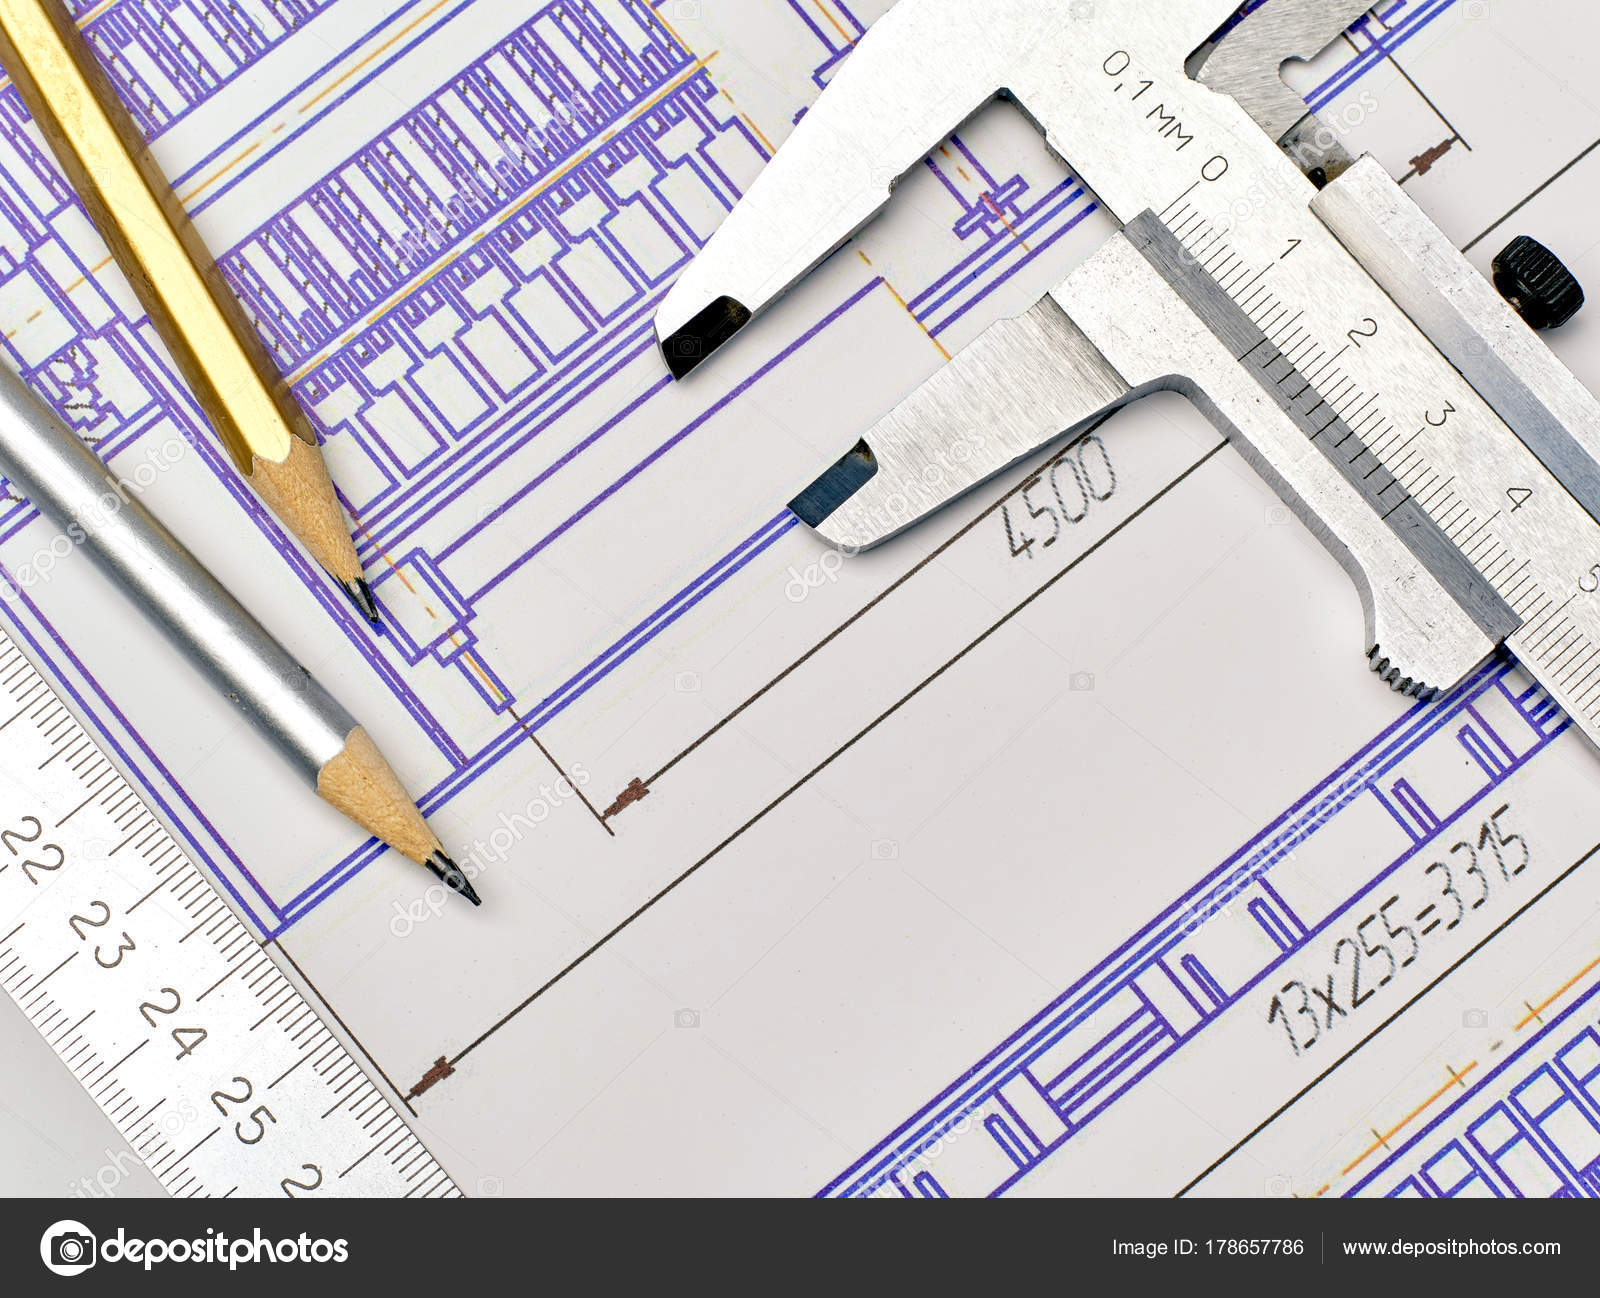 Measuring Tools Drawing at GetDrawings com | Free for